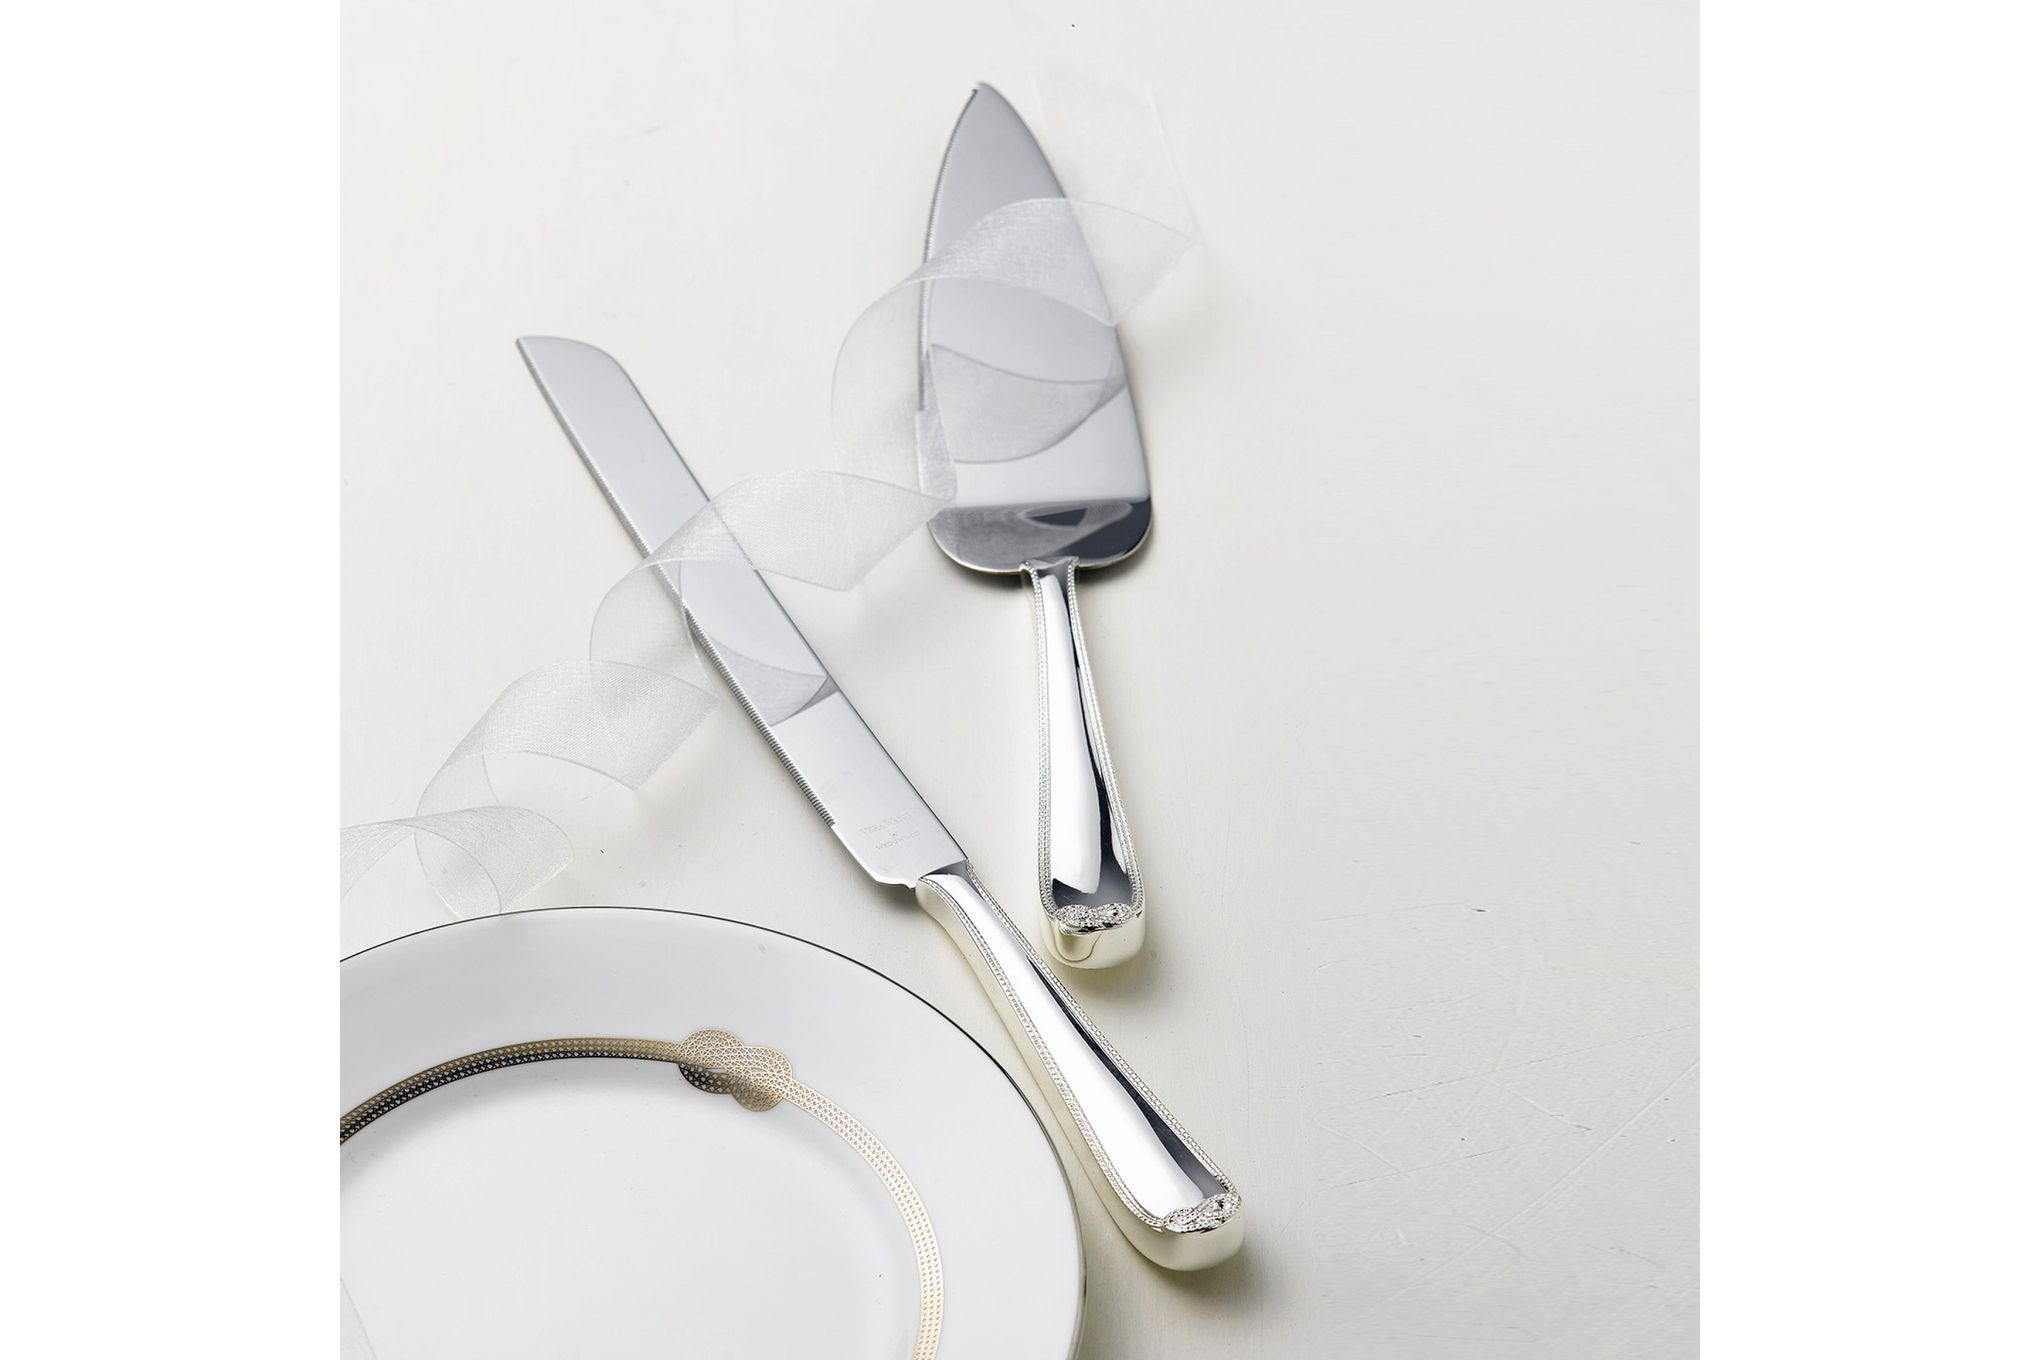 Vera Wang for Wedgwood Gifts & Accessories Cake Knife and Server thumb 3